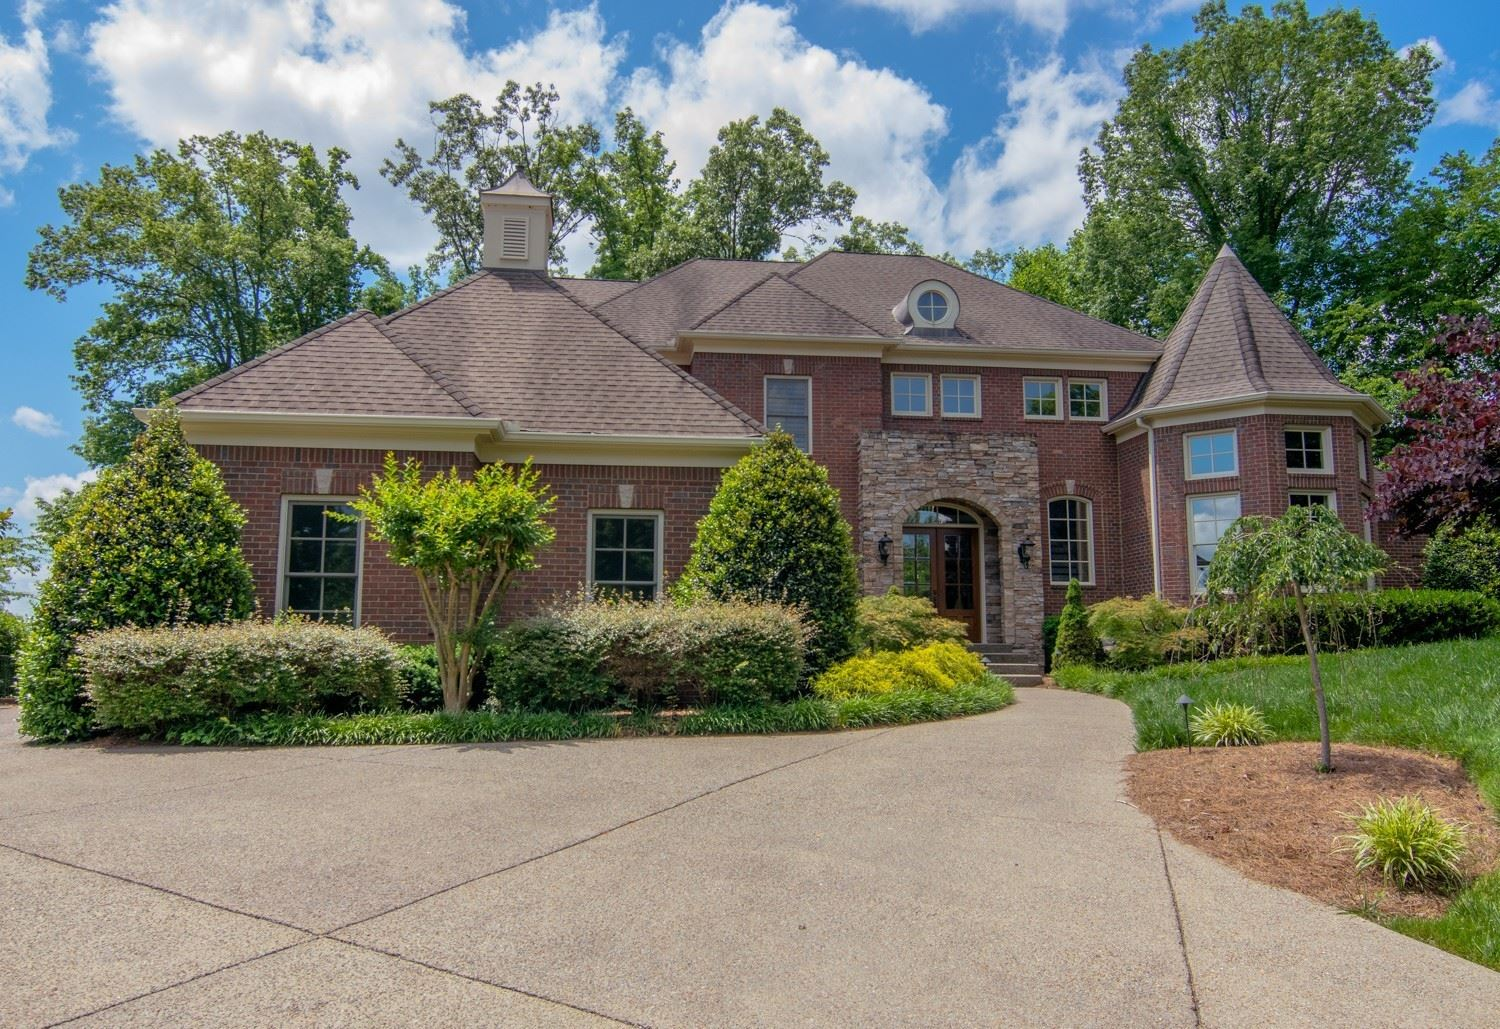 Photo of 9615 Mitchell Pl, Brentwood, TN 37027 (MLS # 2187689)